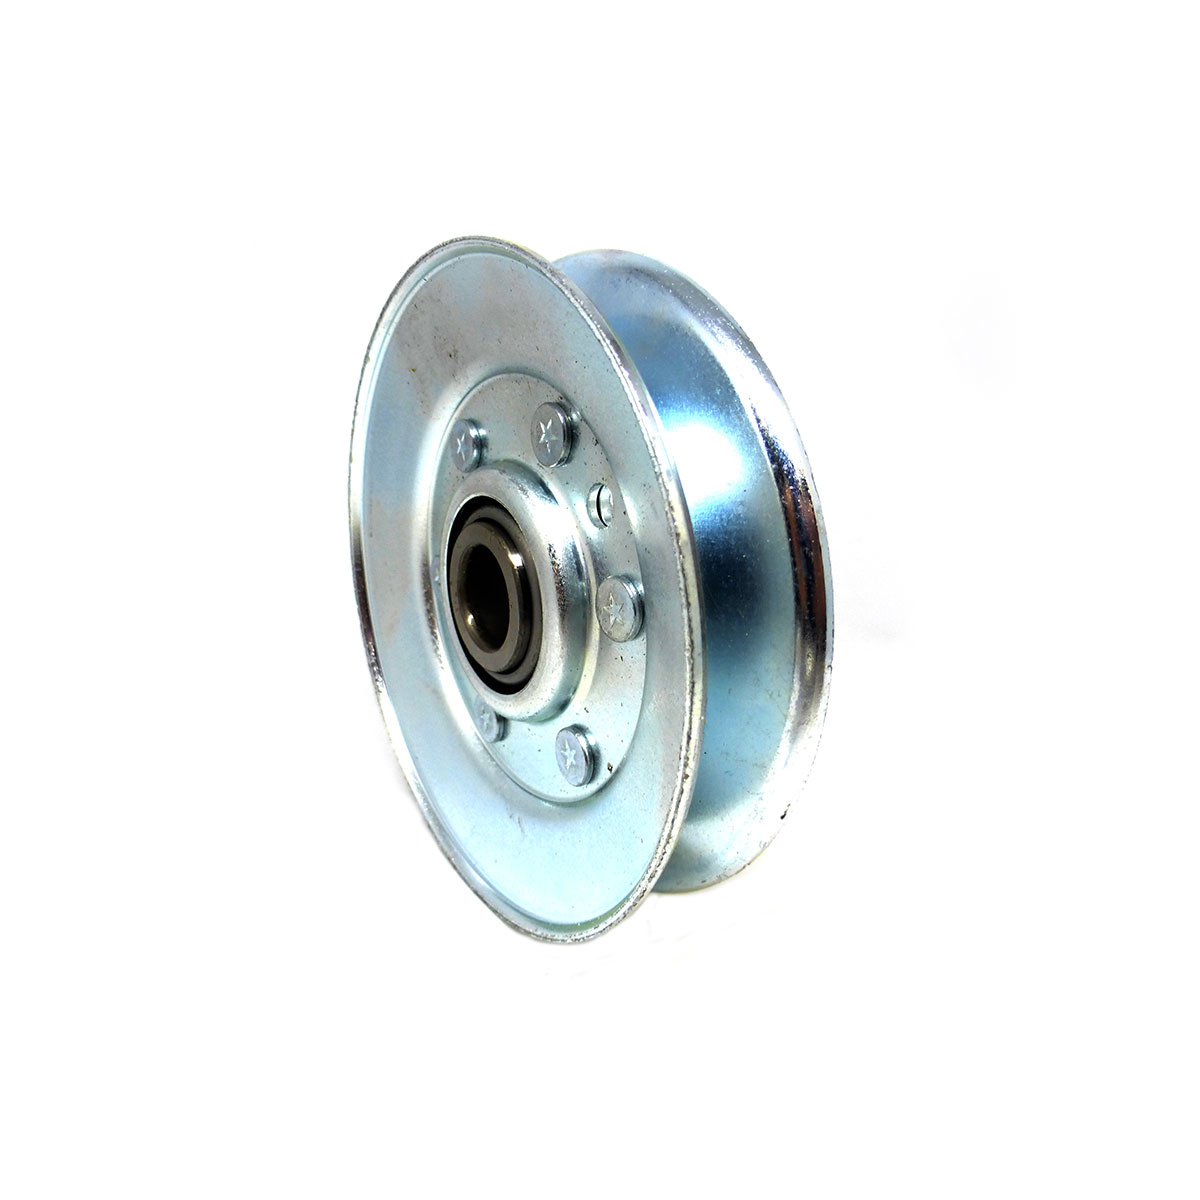 30234 Dixie Chopper V-Idler Pulley